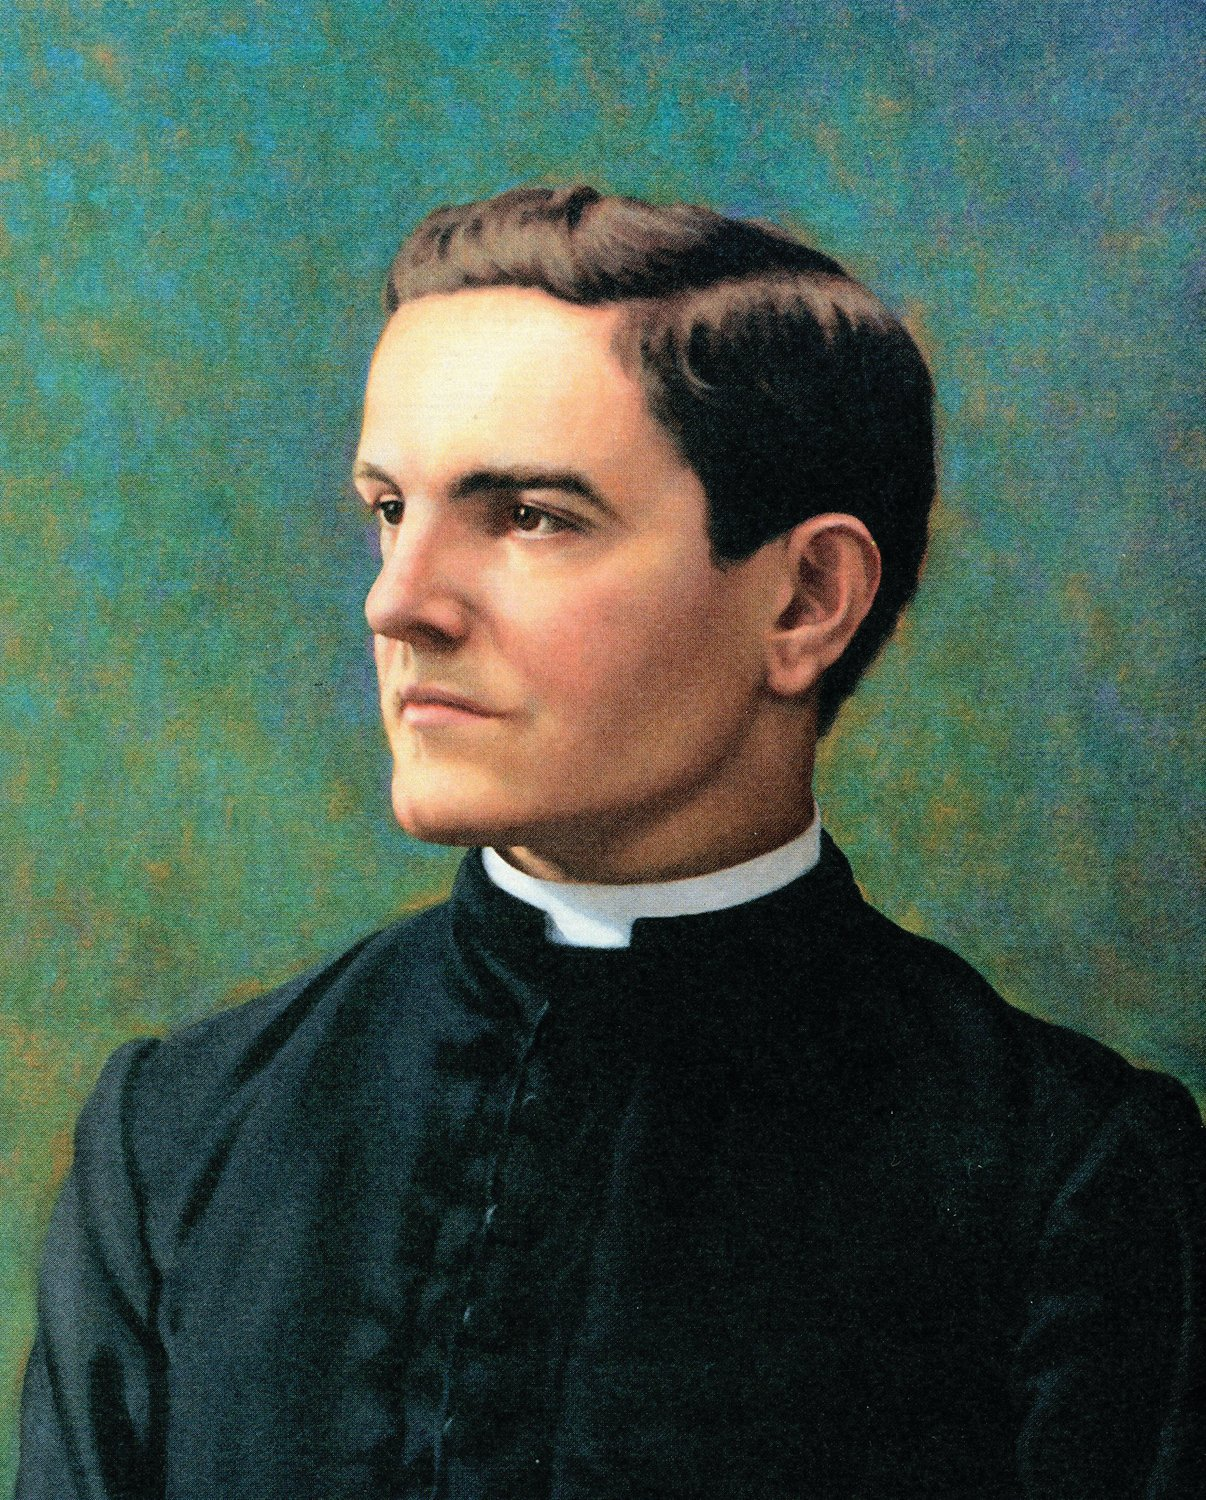 TO BE BLESSED—Pope Francis has approved a miracle attributed to the intercession of Father Michael McGivney, founder of the Knights of Columbus, clearing the way for his beatification, which is to take place in Connecticut in the fall.